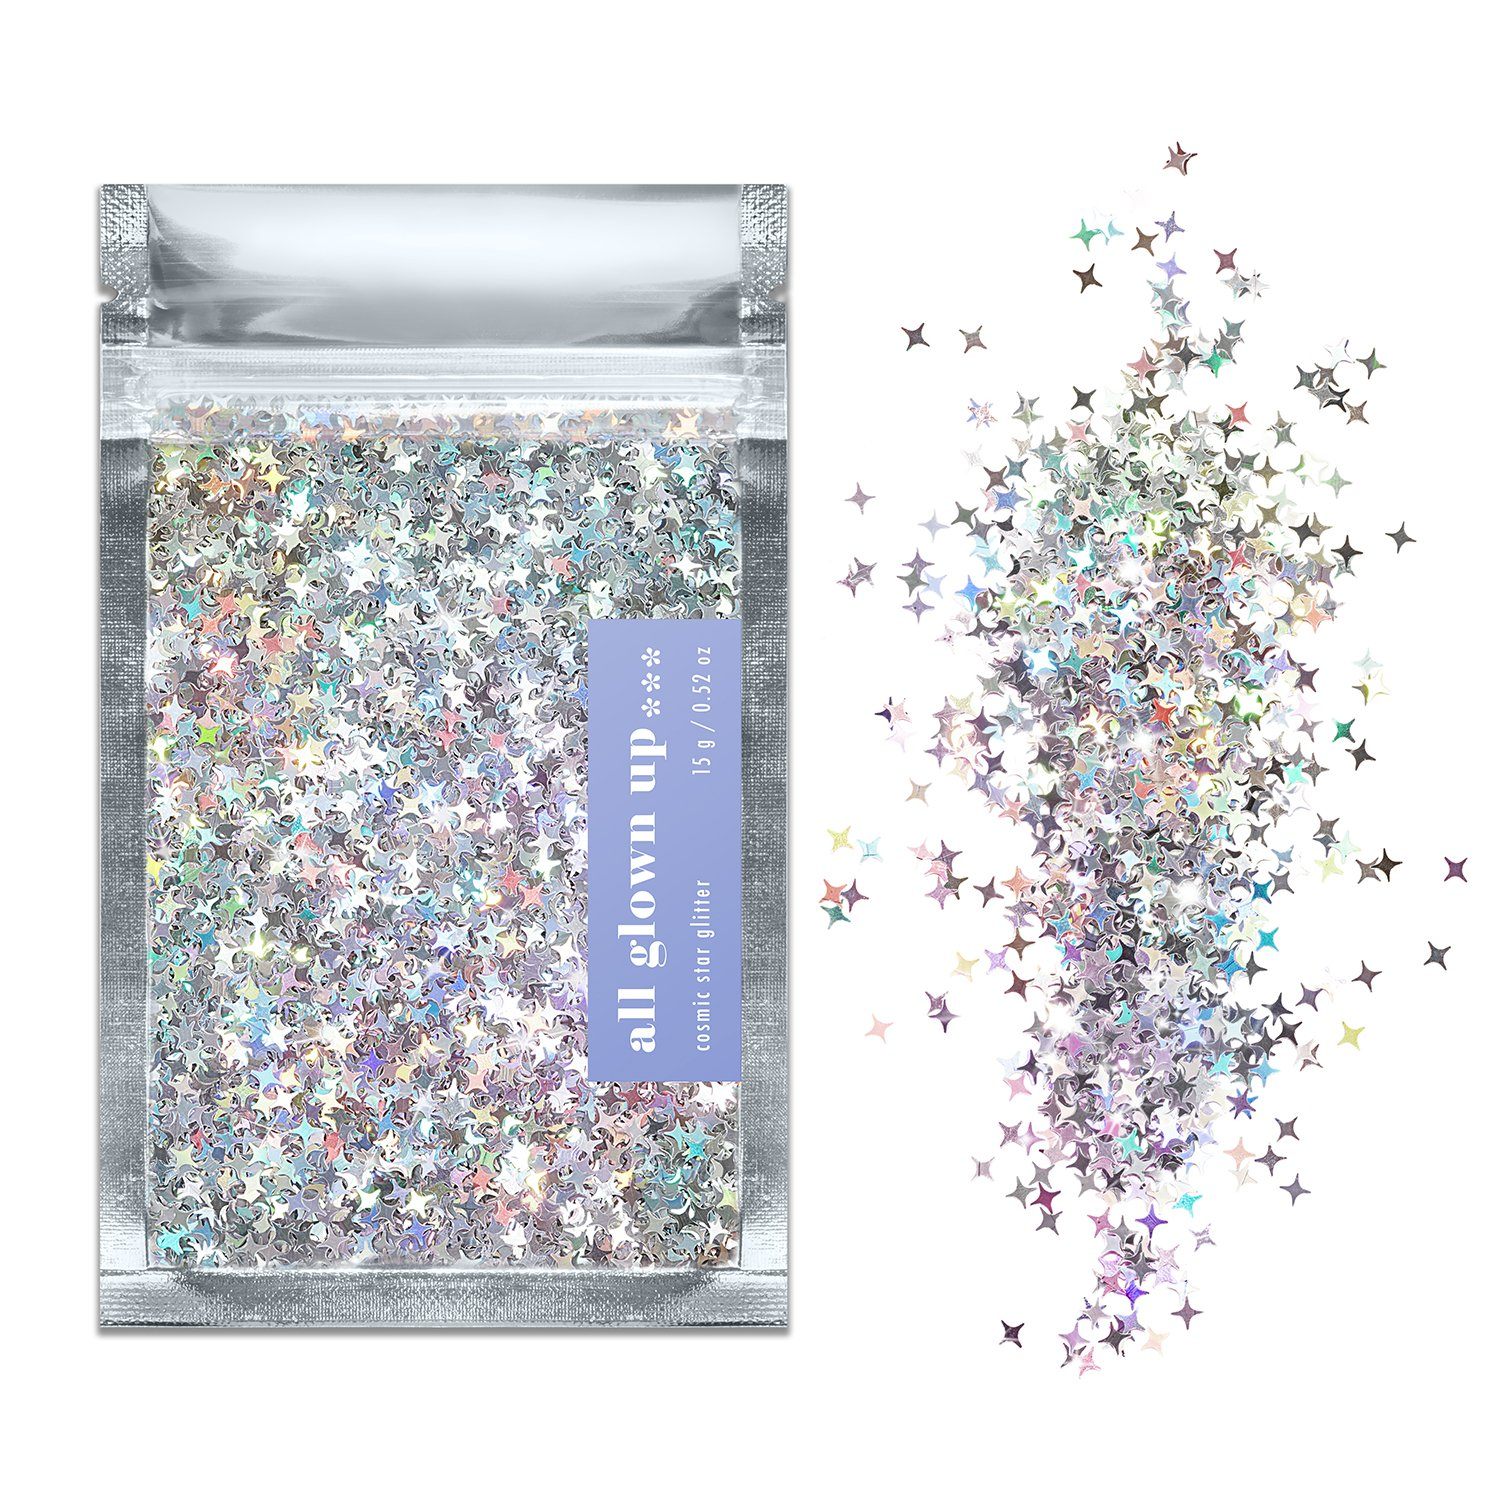 Silver Holographic Cosmic Star Chunky Cosmetic Glitter (15g) - Great for Festivals, For Use on Face, Body, Hair, and Nails - by All Glown Up HCS15